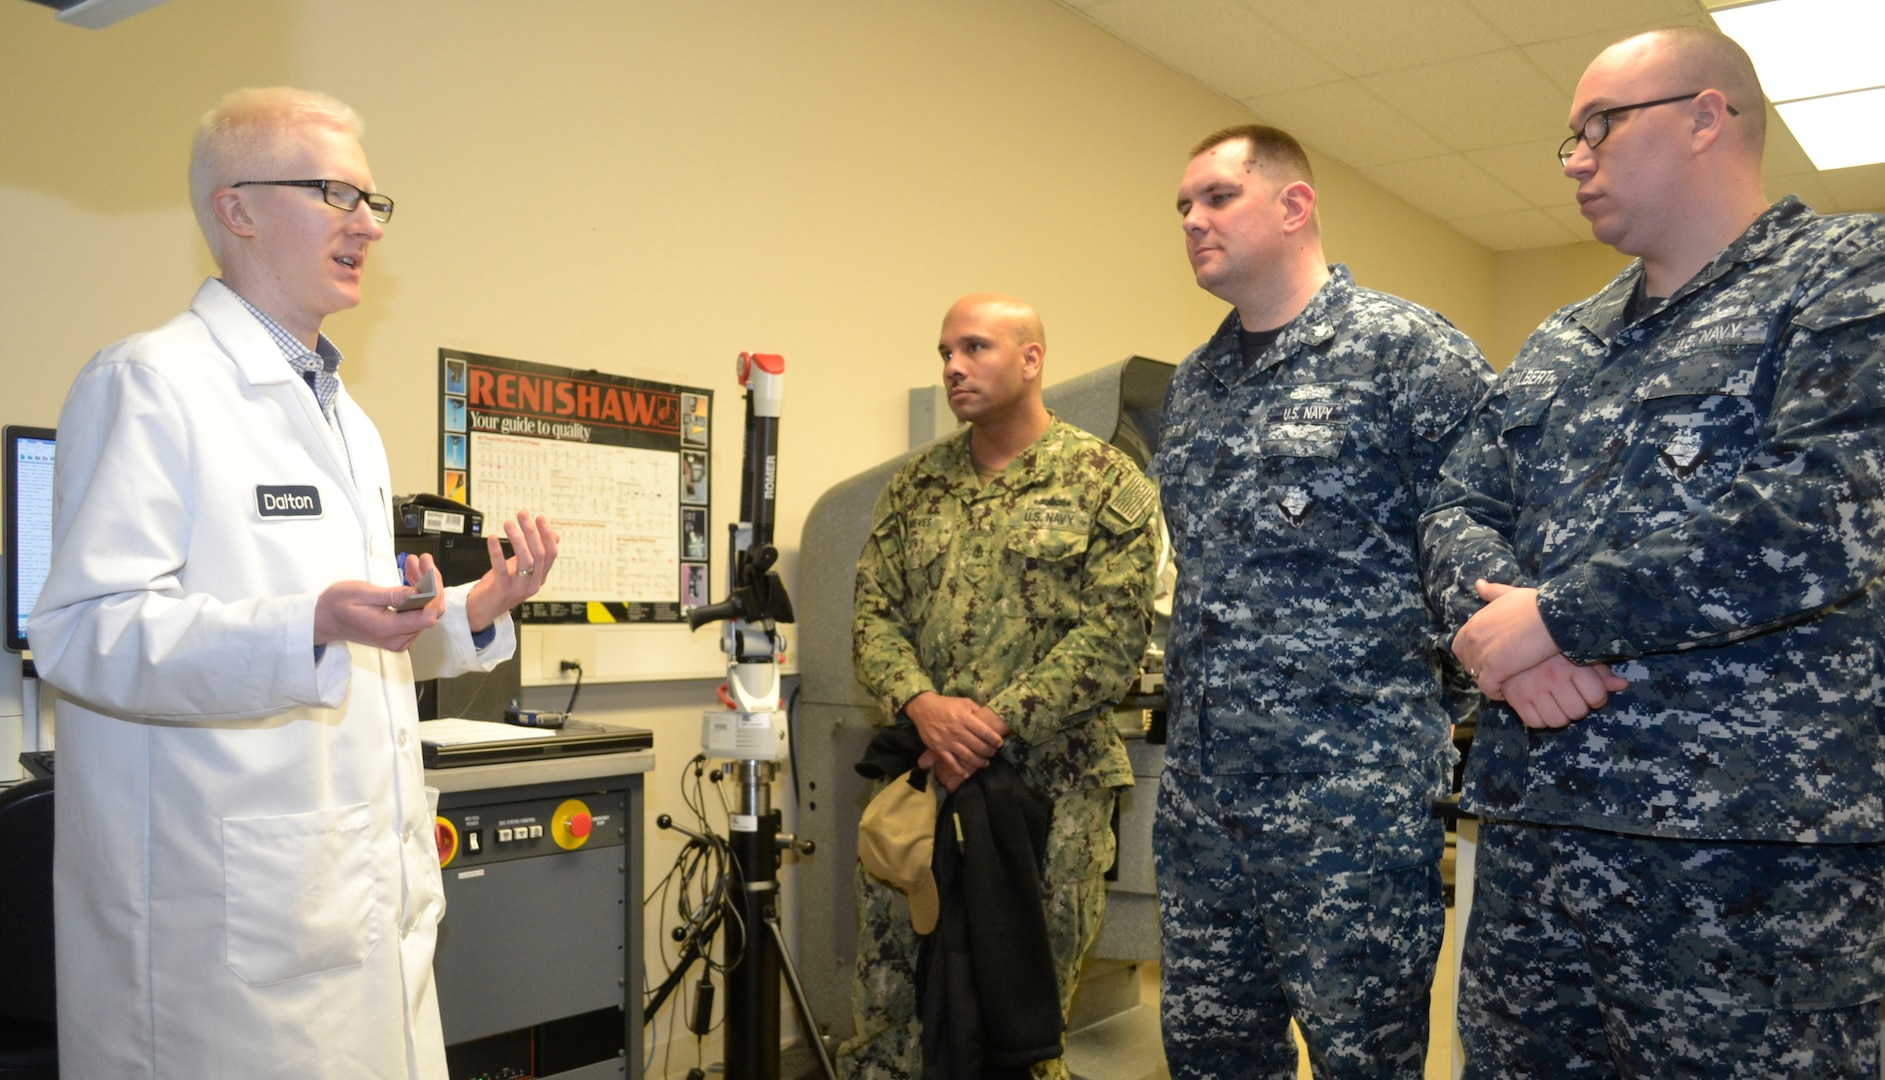 DLA Troop Support Product Test Center Analytical engineer Edward Dalton, far left, explains a PTC-A testing process for reflectivity of materials to a group of sailors assigned to Naval Support Activity Philadelphia April 3, 2019 in Philadelphia.